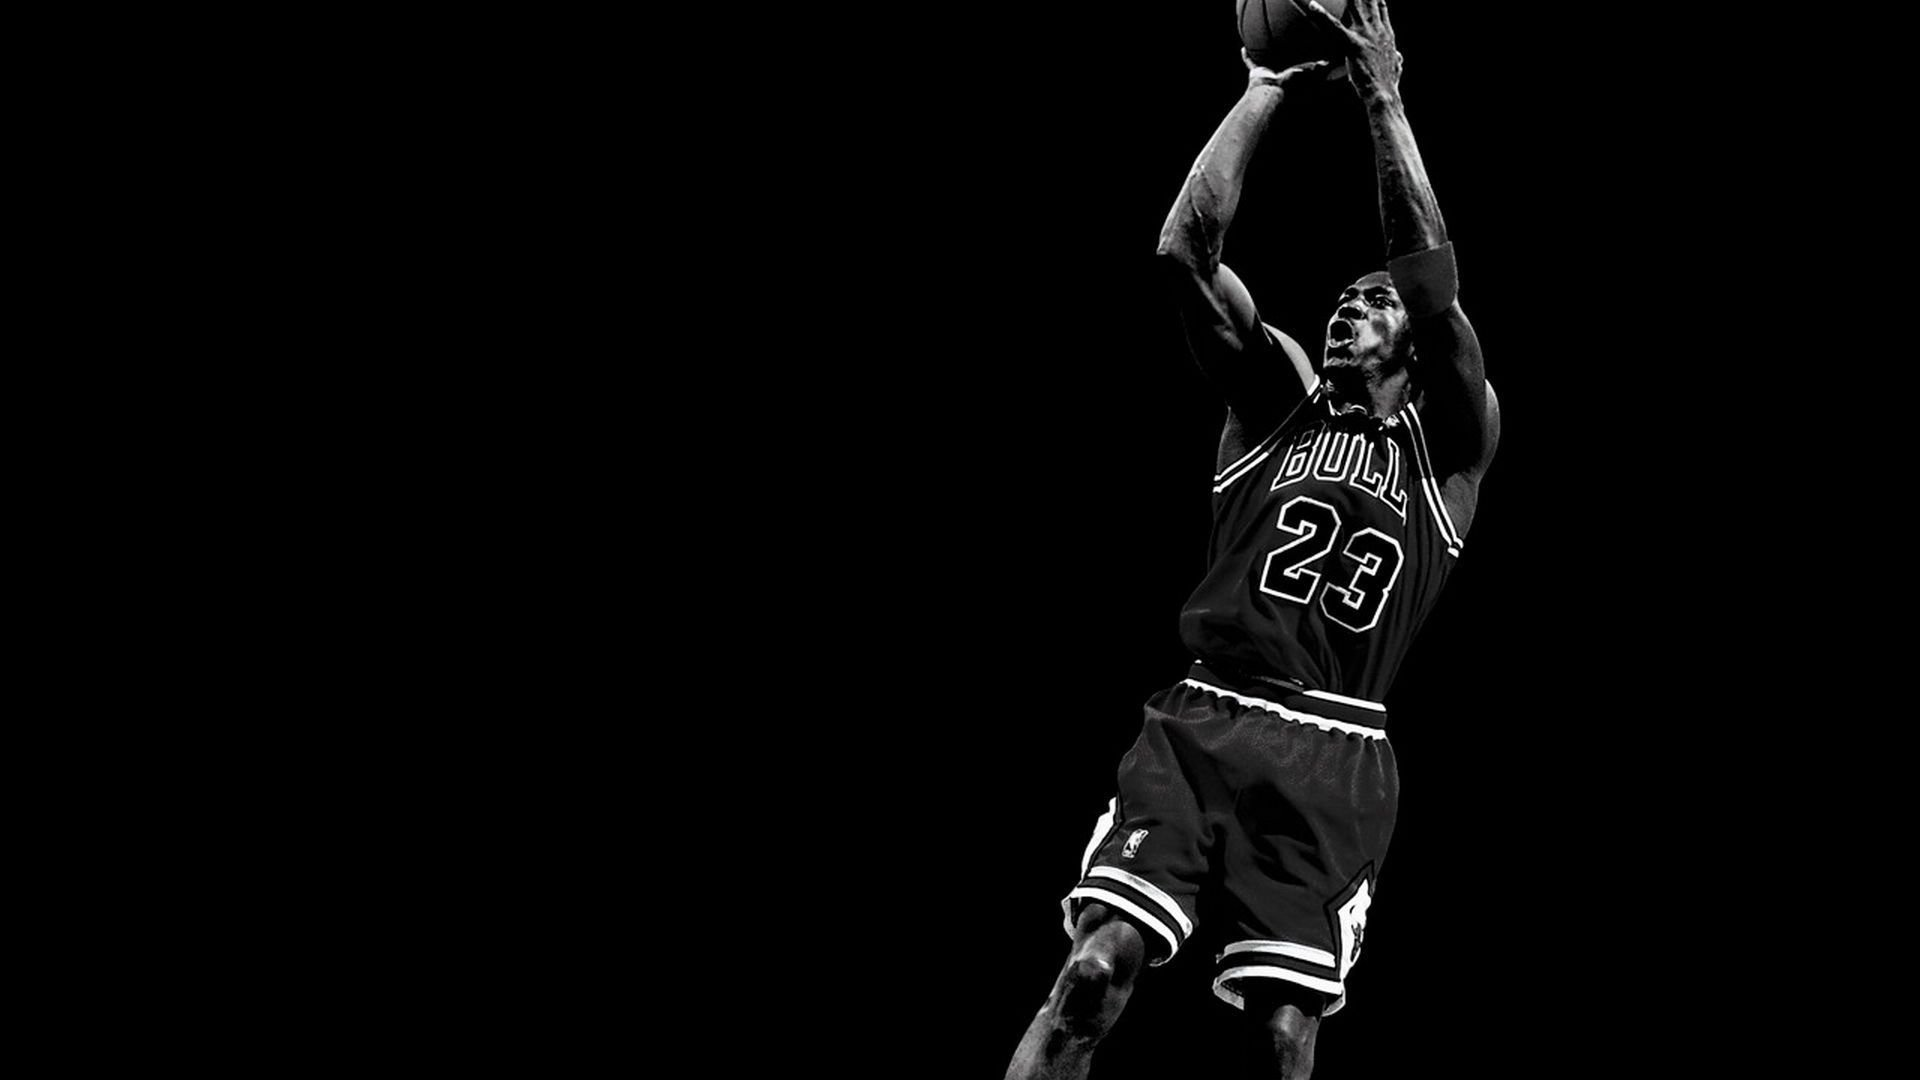 Awesome Michael Jordan free wallpaper ID:235920 for 1080p computer